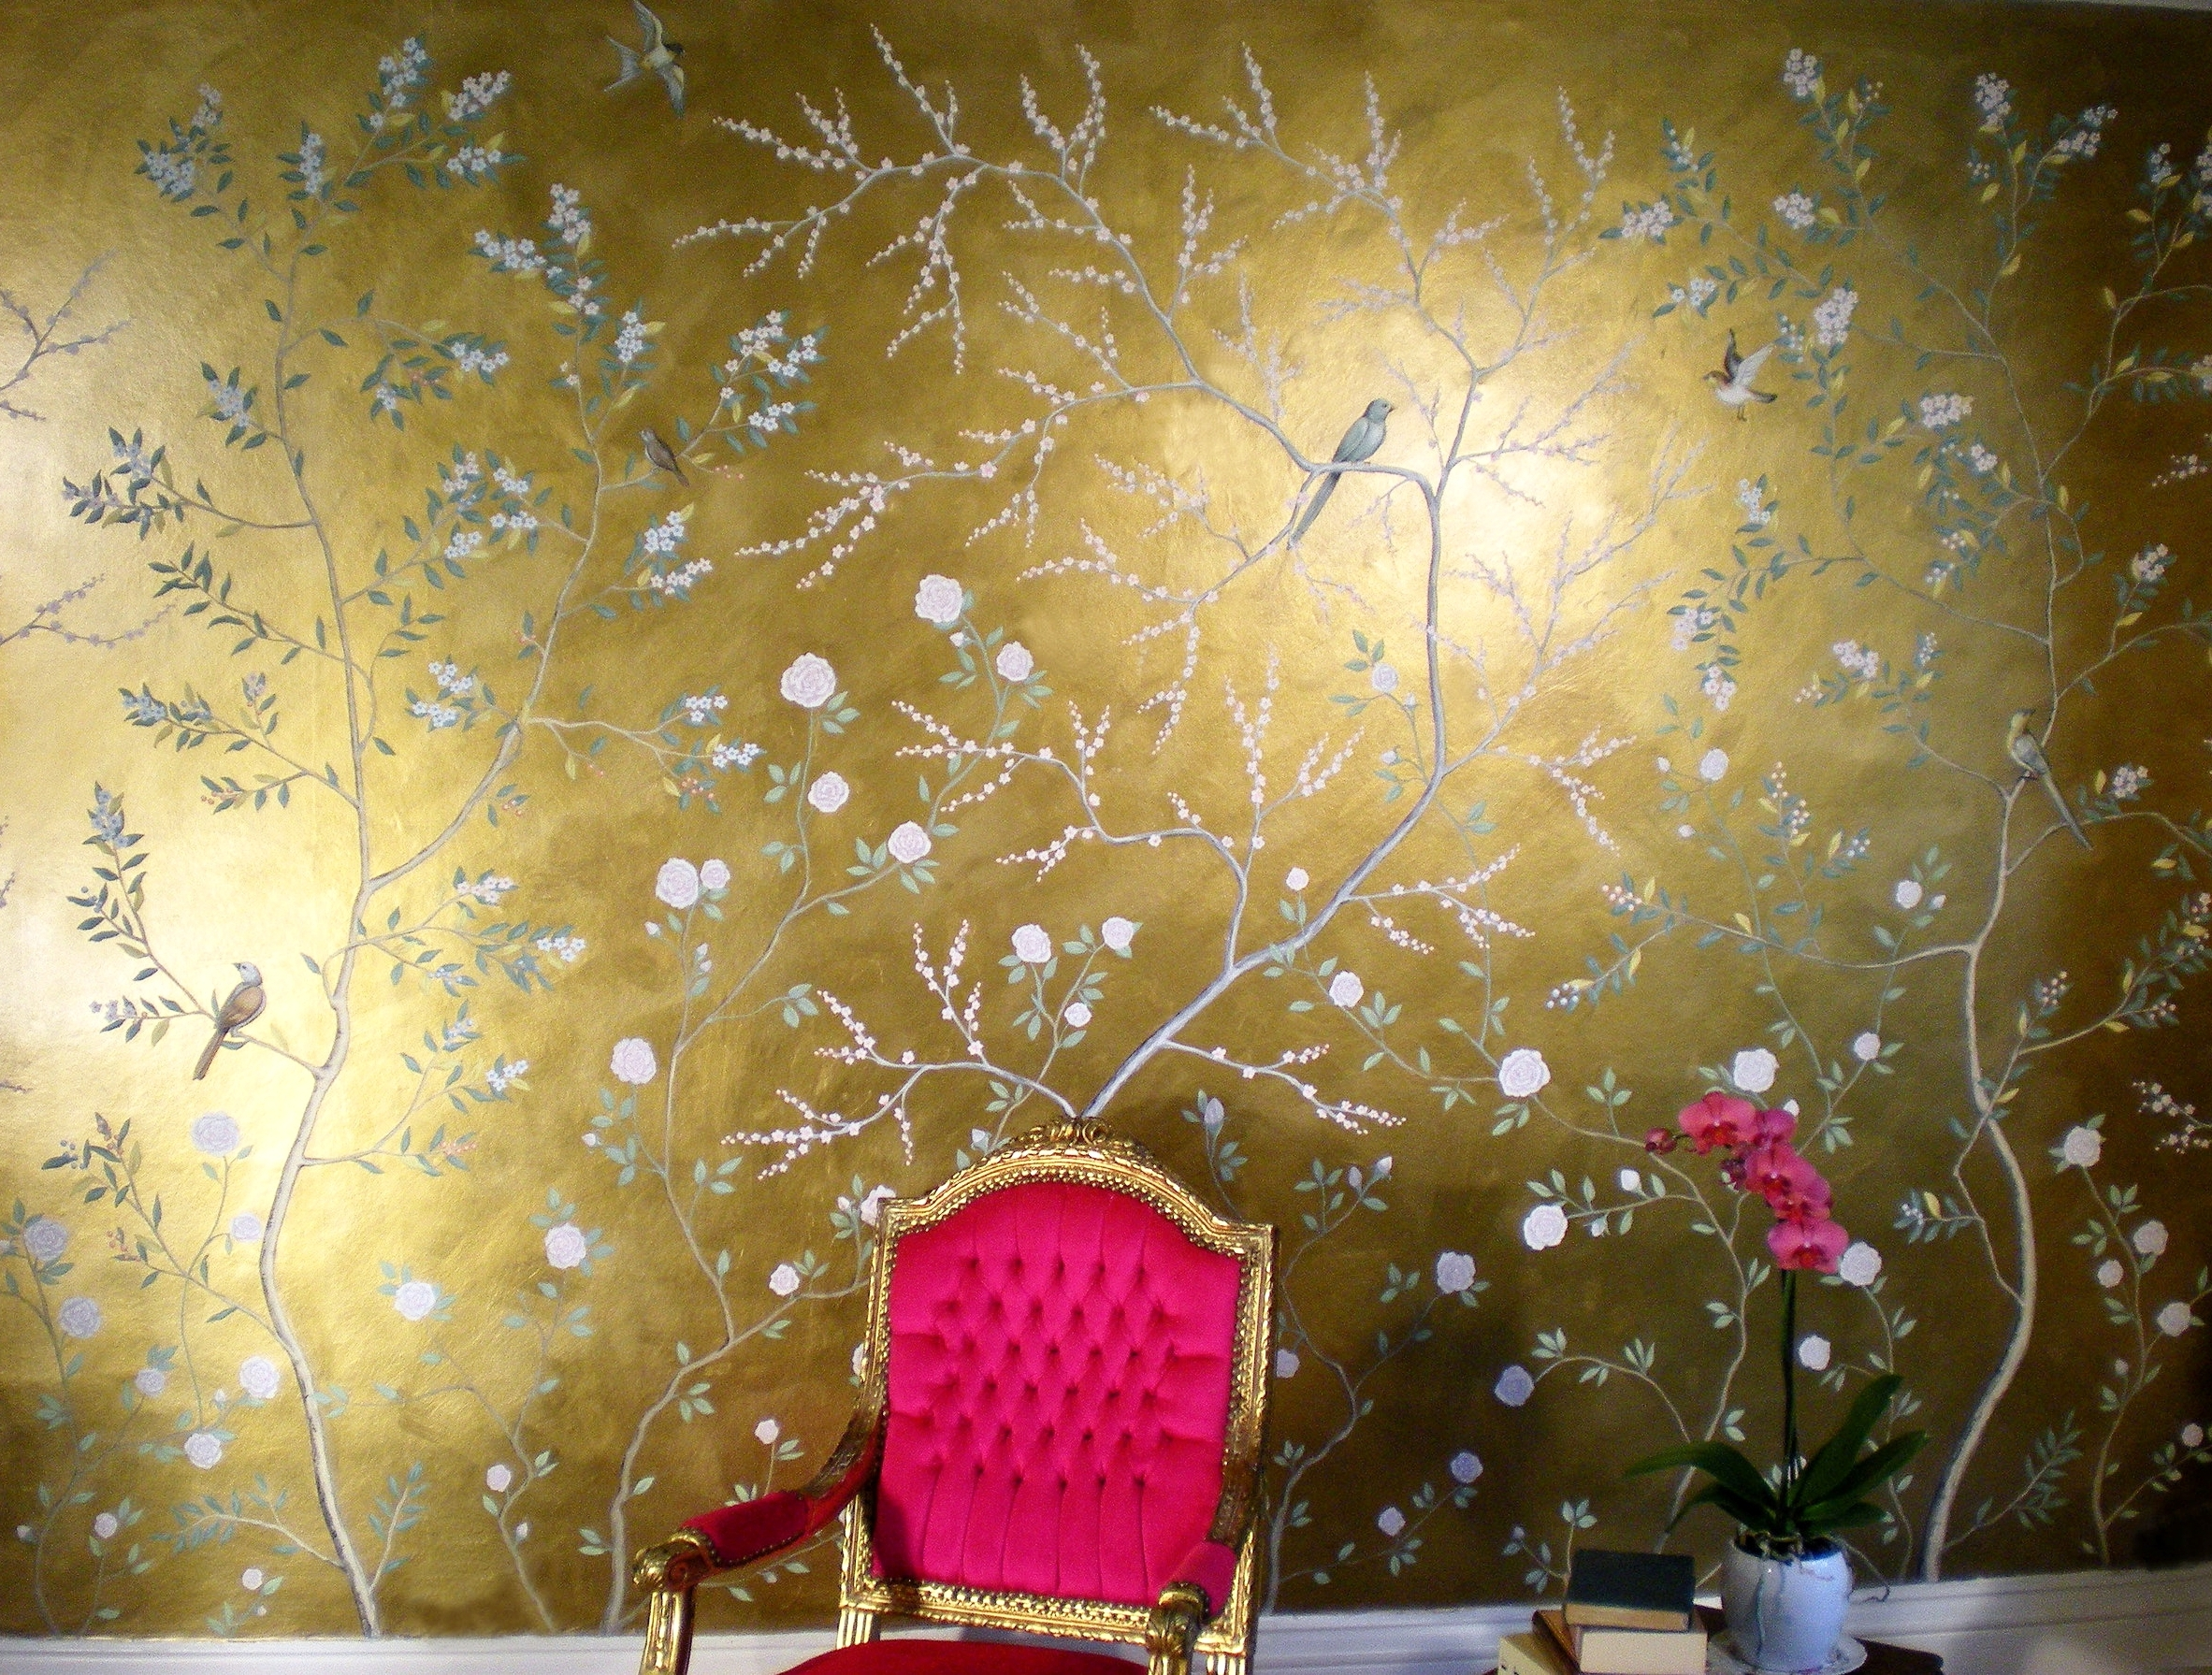 Golden chinoiserie, wall mural